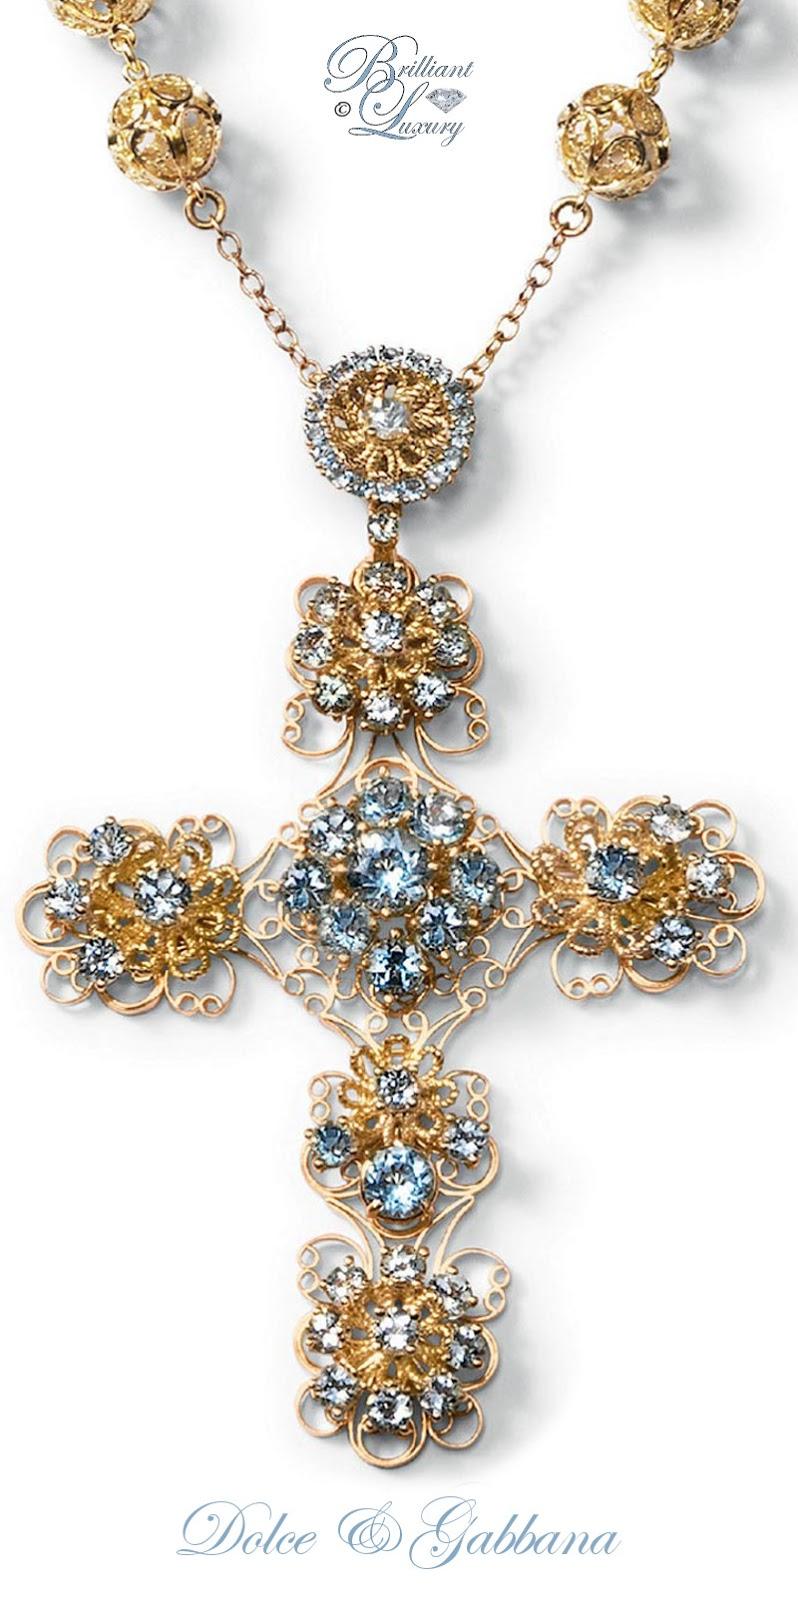 brilliant luxury dolce gabbana jewellery